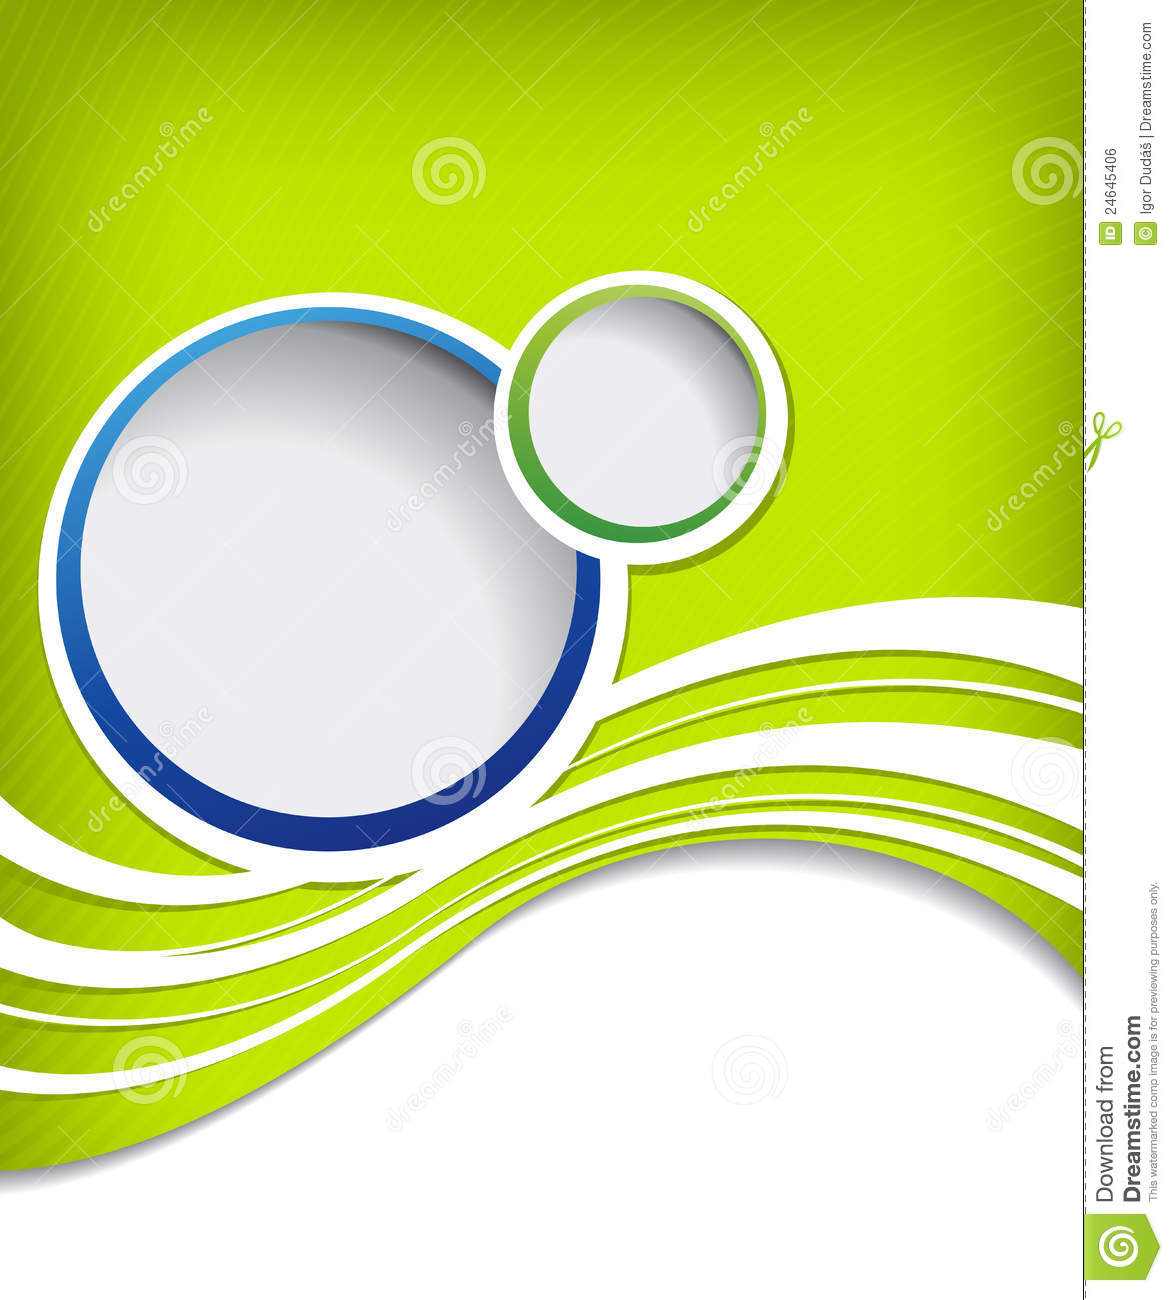 Flyer Design Royalty Free Stock Image - Image: 24645406